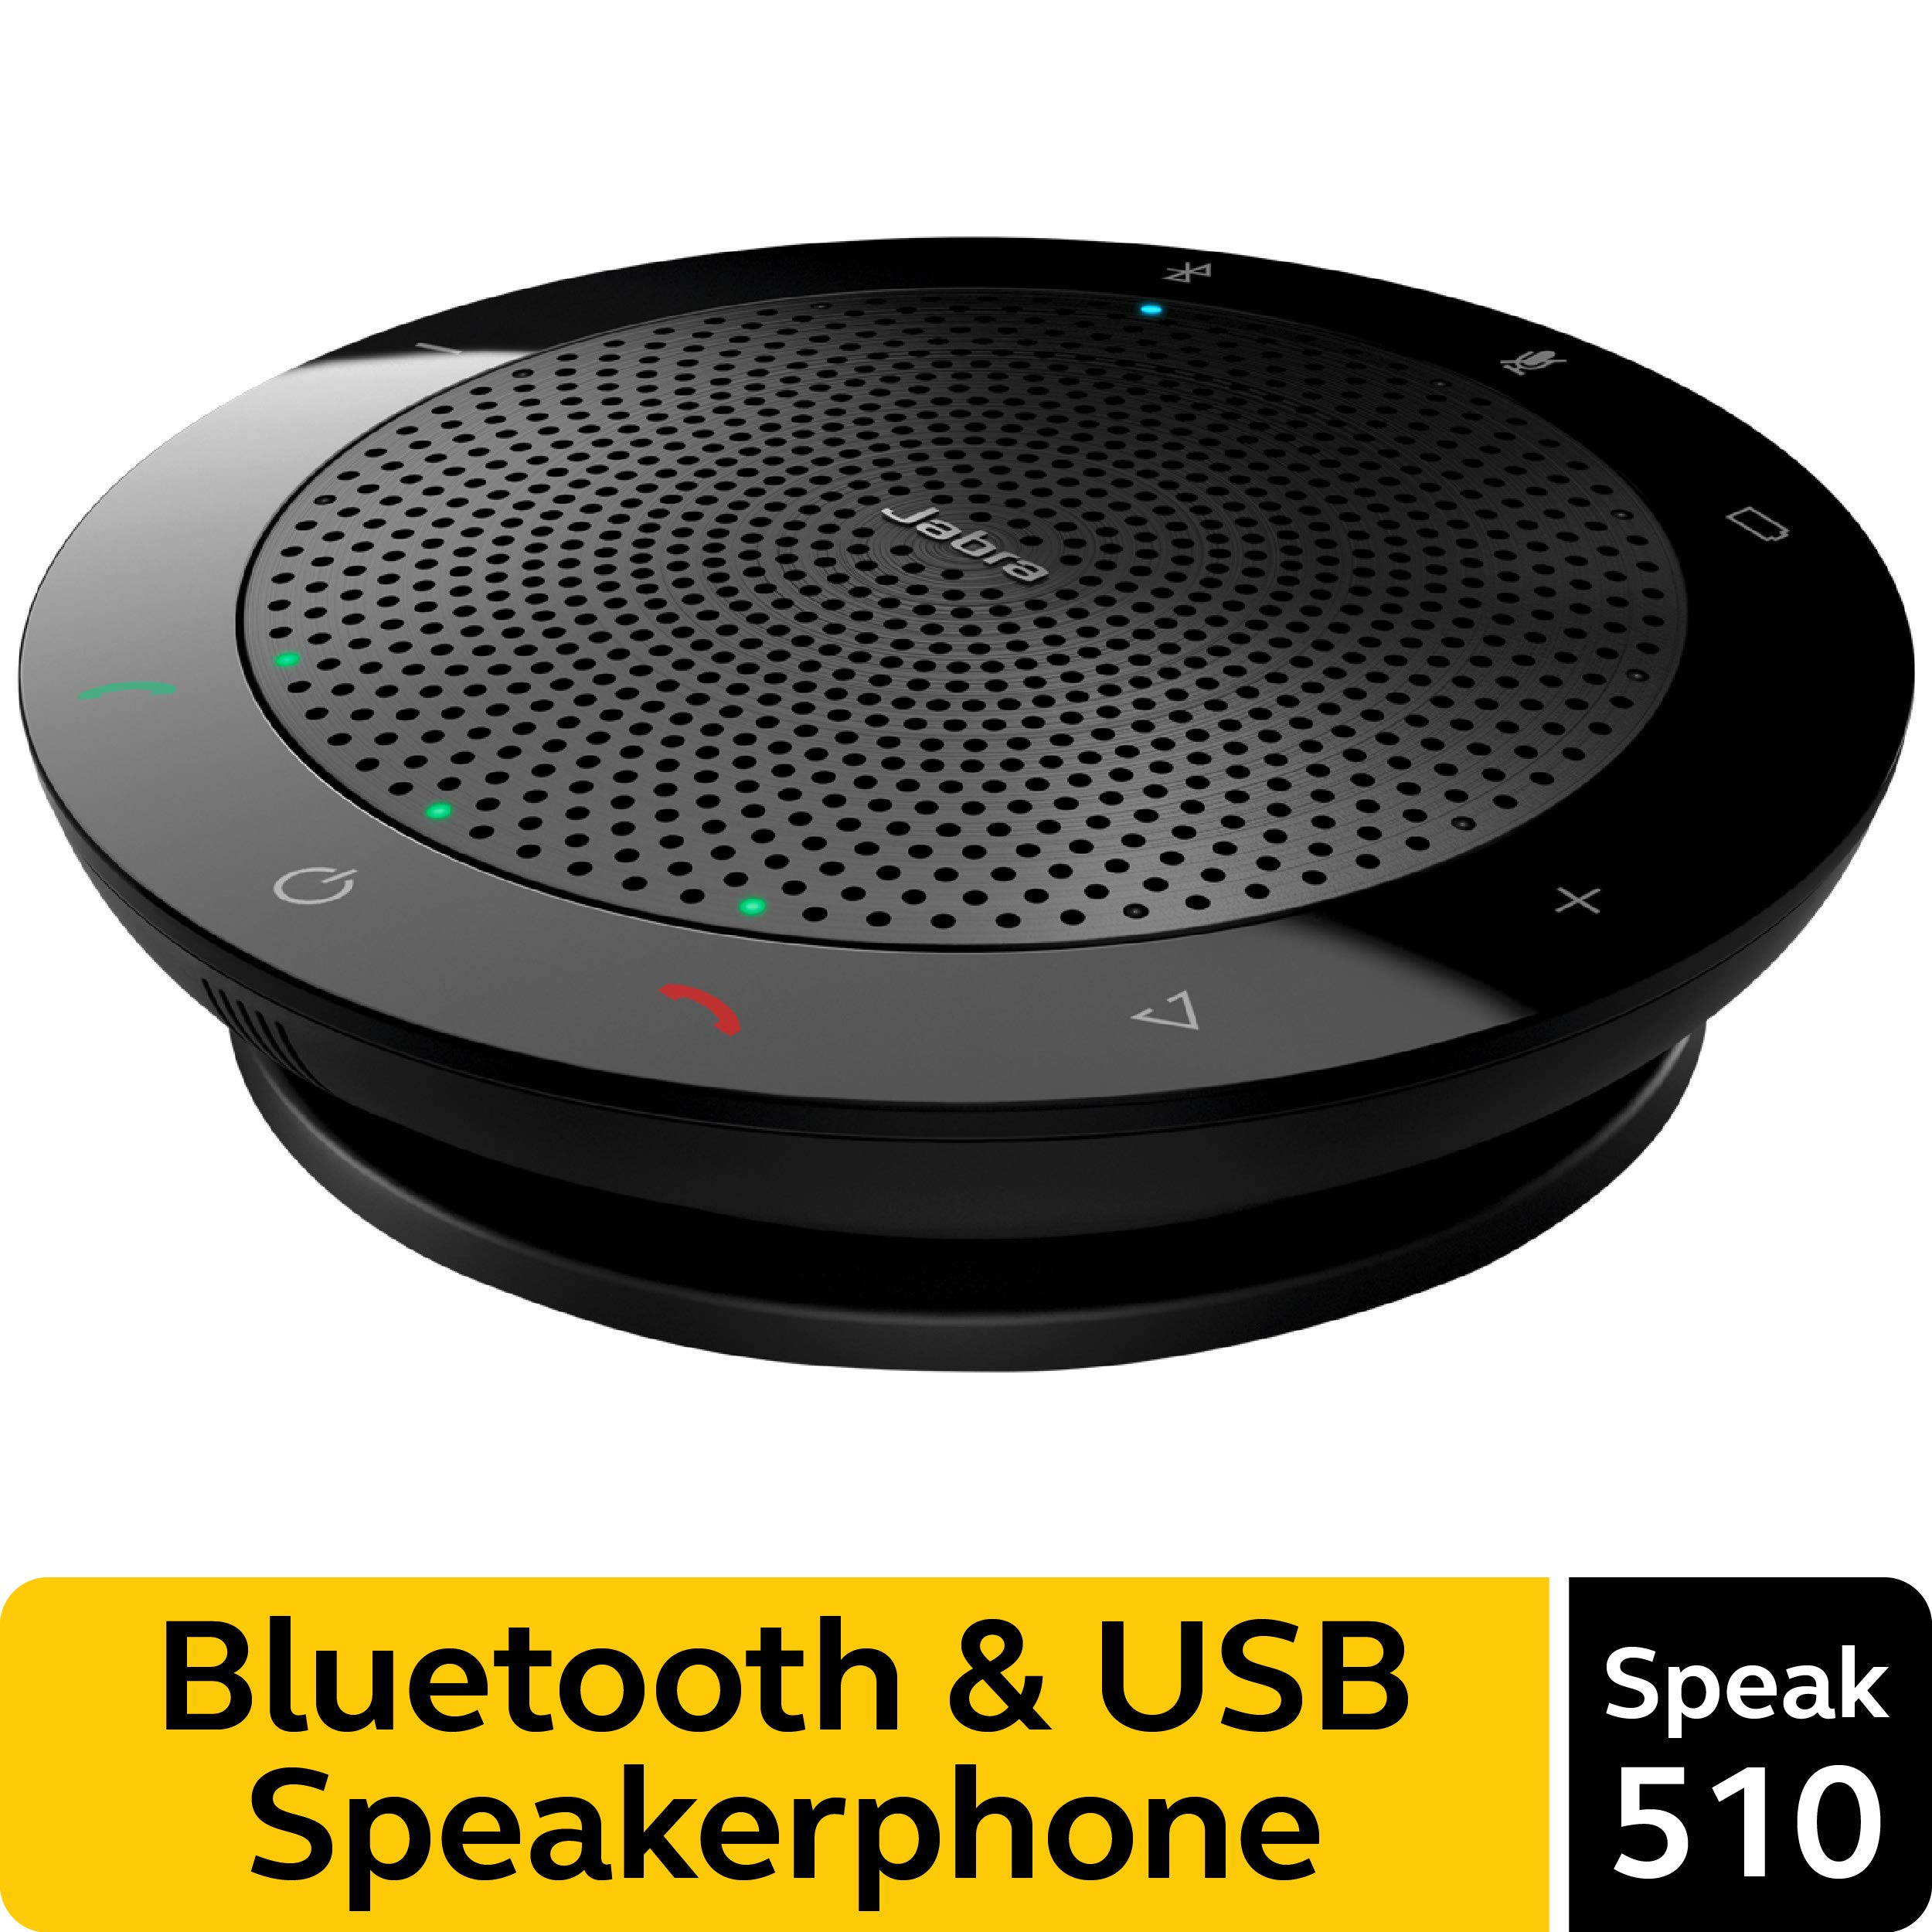 jabra-speak-510-wireless-bluetooth-speaker-for-softphone-and-mobile-phone-easy-setup-portable-speaker-for-holding-meetings-anywhere-with-outstanding-sound-quality